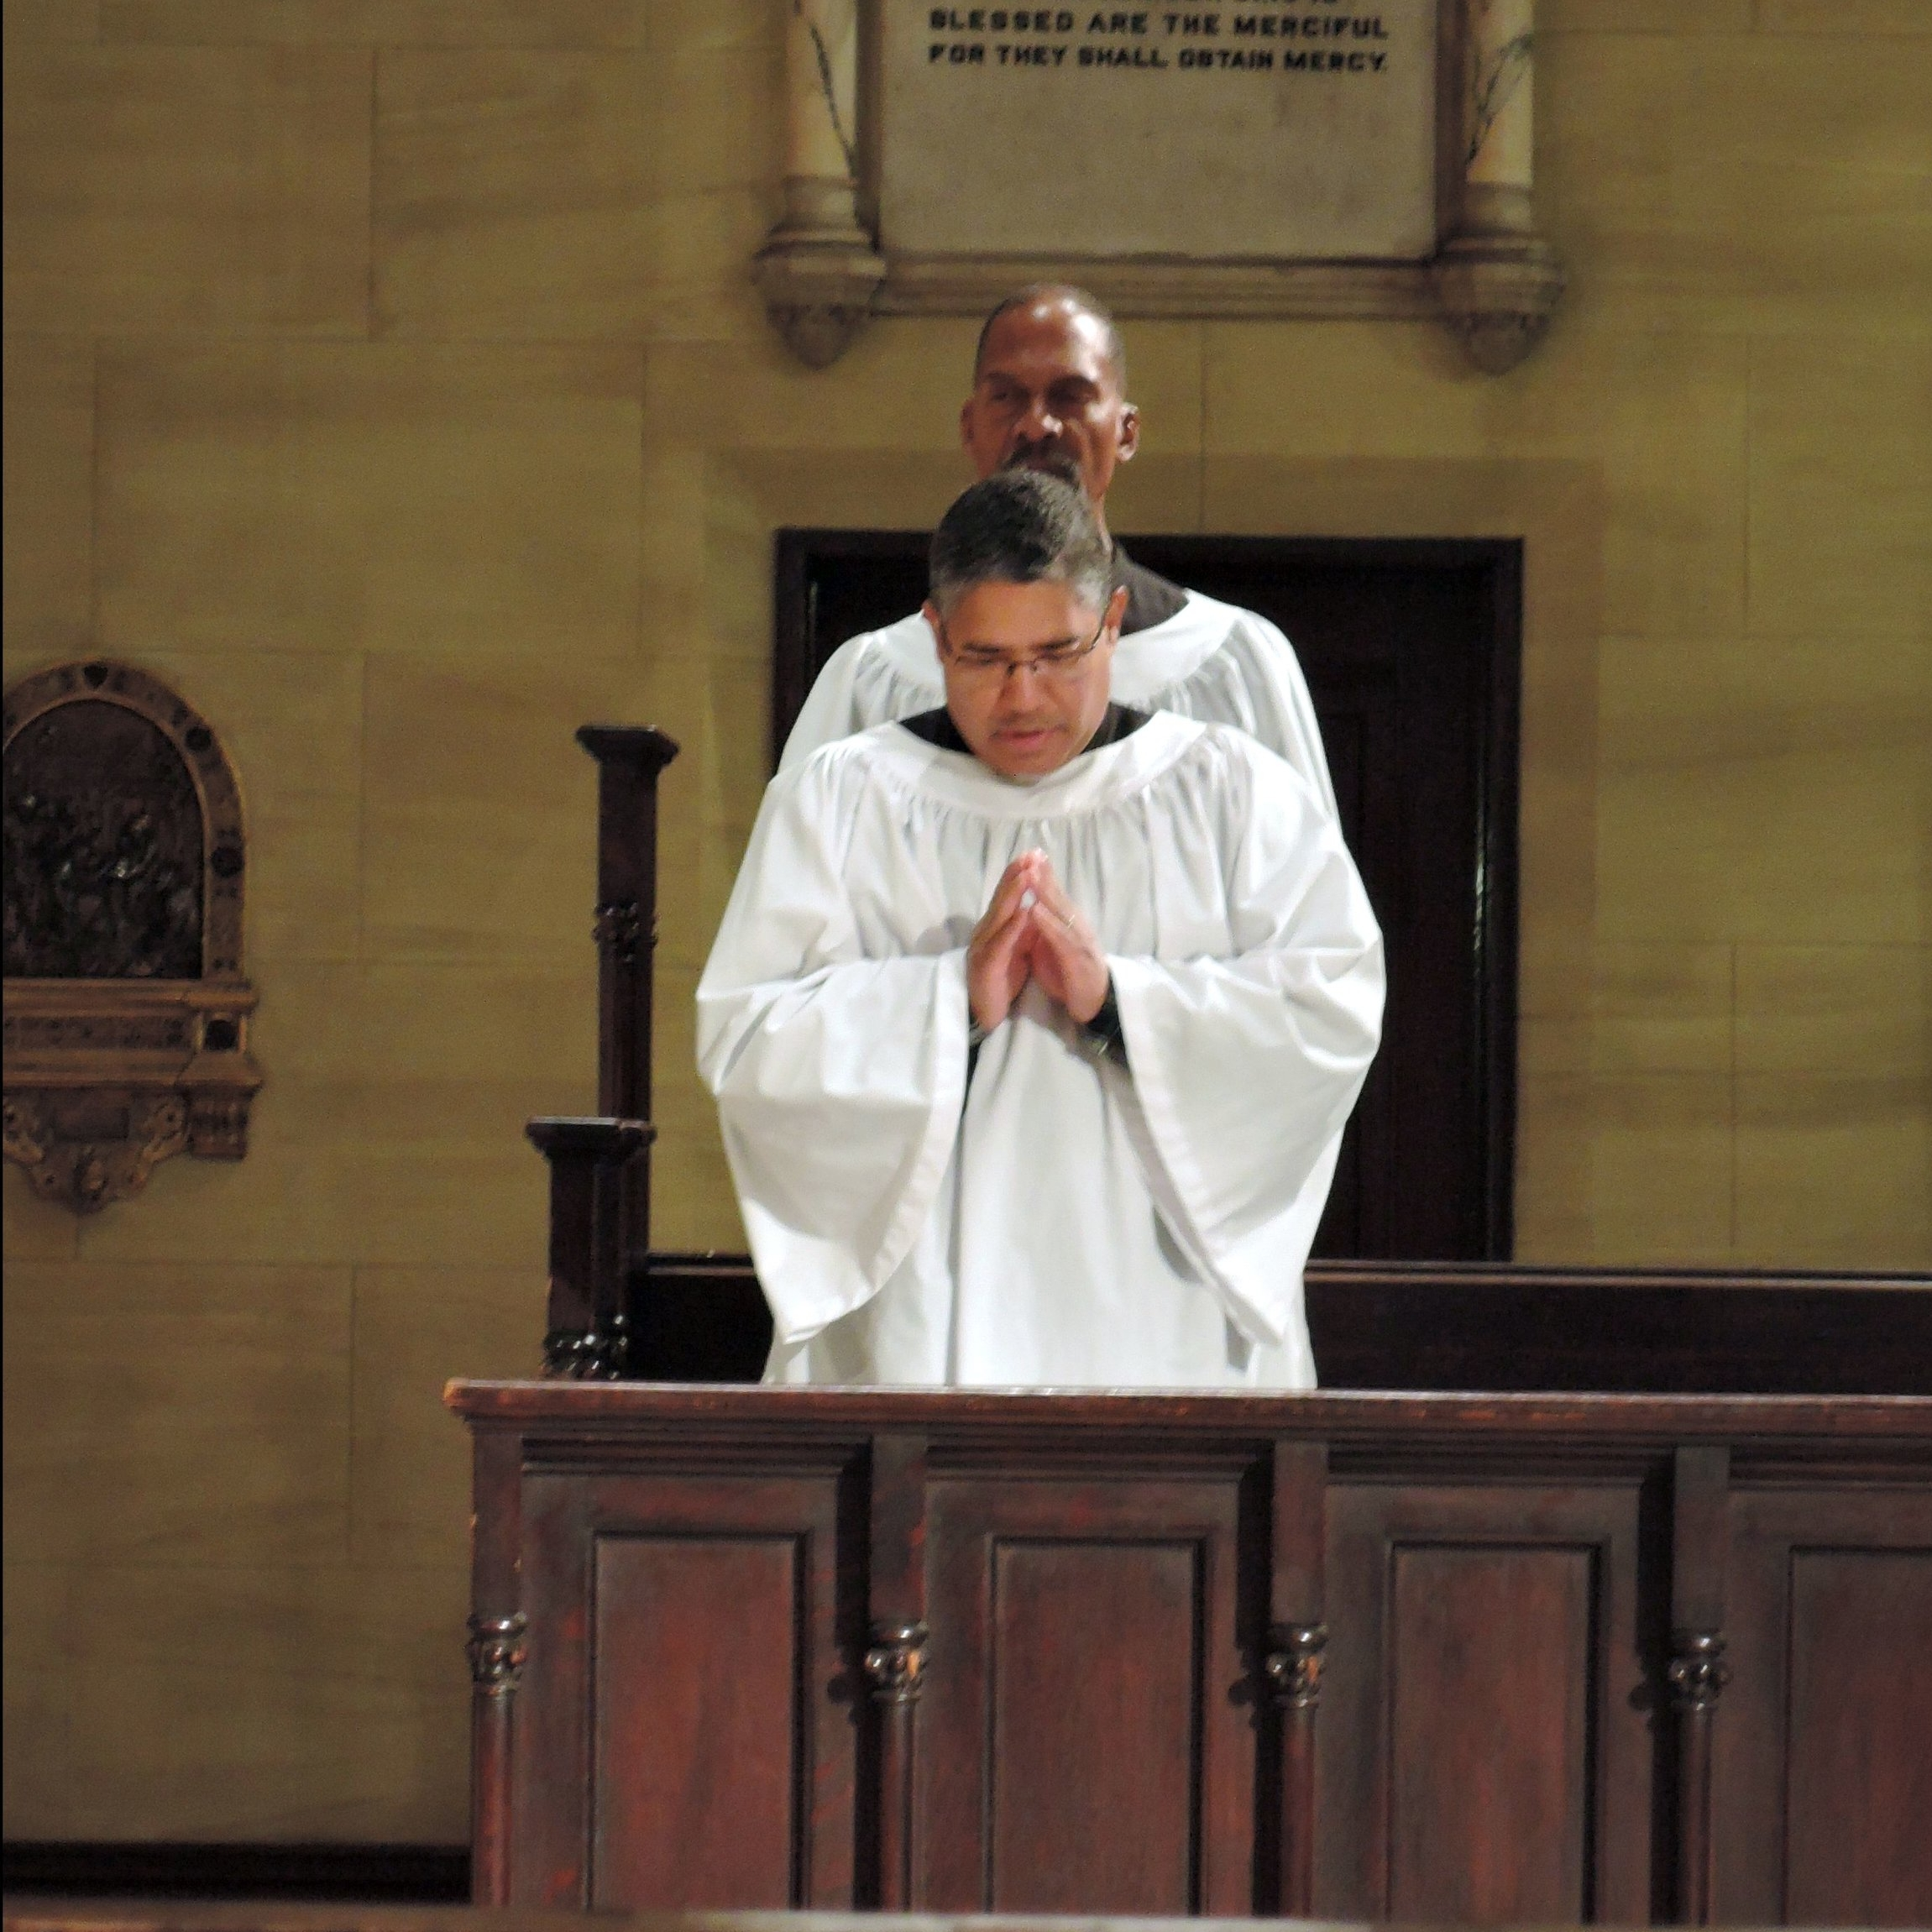 Acolytes Luis Reyes (front) and Charles Carson at Solemn Mass on Sunday, October 21  Photo: Brother Damien Joseph, SSF